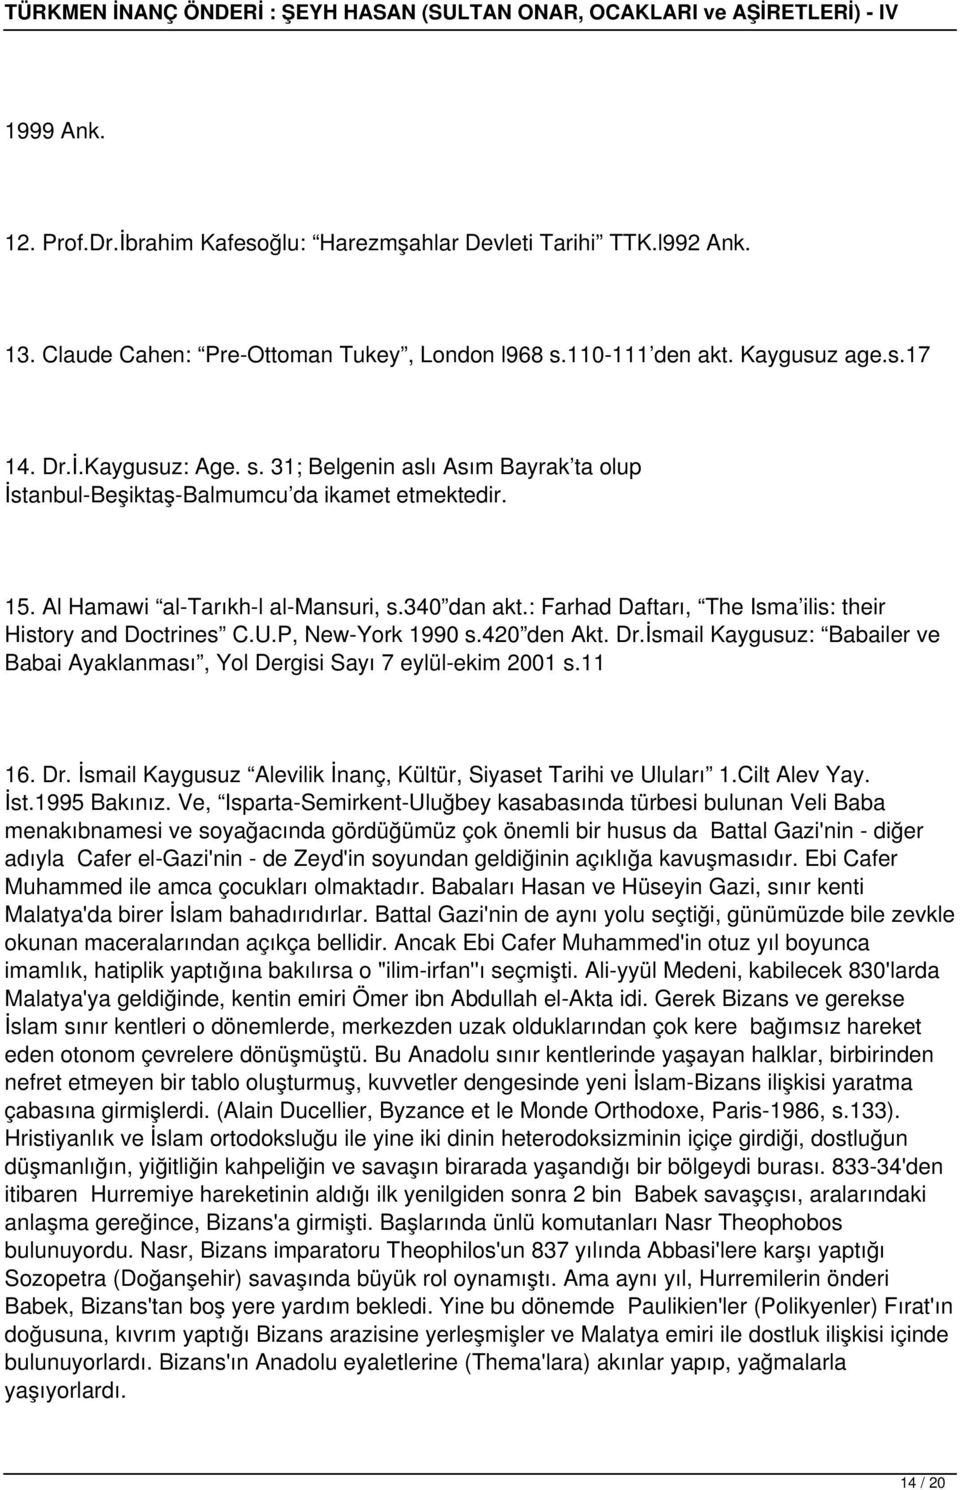 340 dan akt.: Farhad Daftarı, The Isma ilis: their History and Doctrines C.U.P, New-York 1990 s.420 den Akt. Dr.İsmail Kaygusuz: Babailer ve Babai Ayaklanması, Yol Dergisi Sayı 7 eylül-ekim 2001 s.